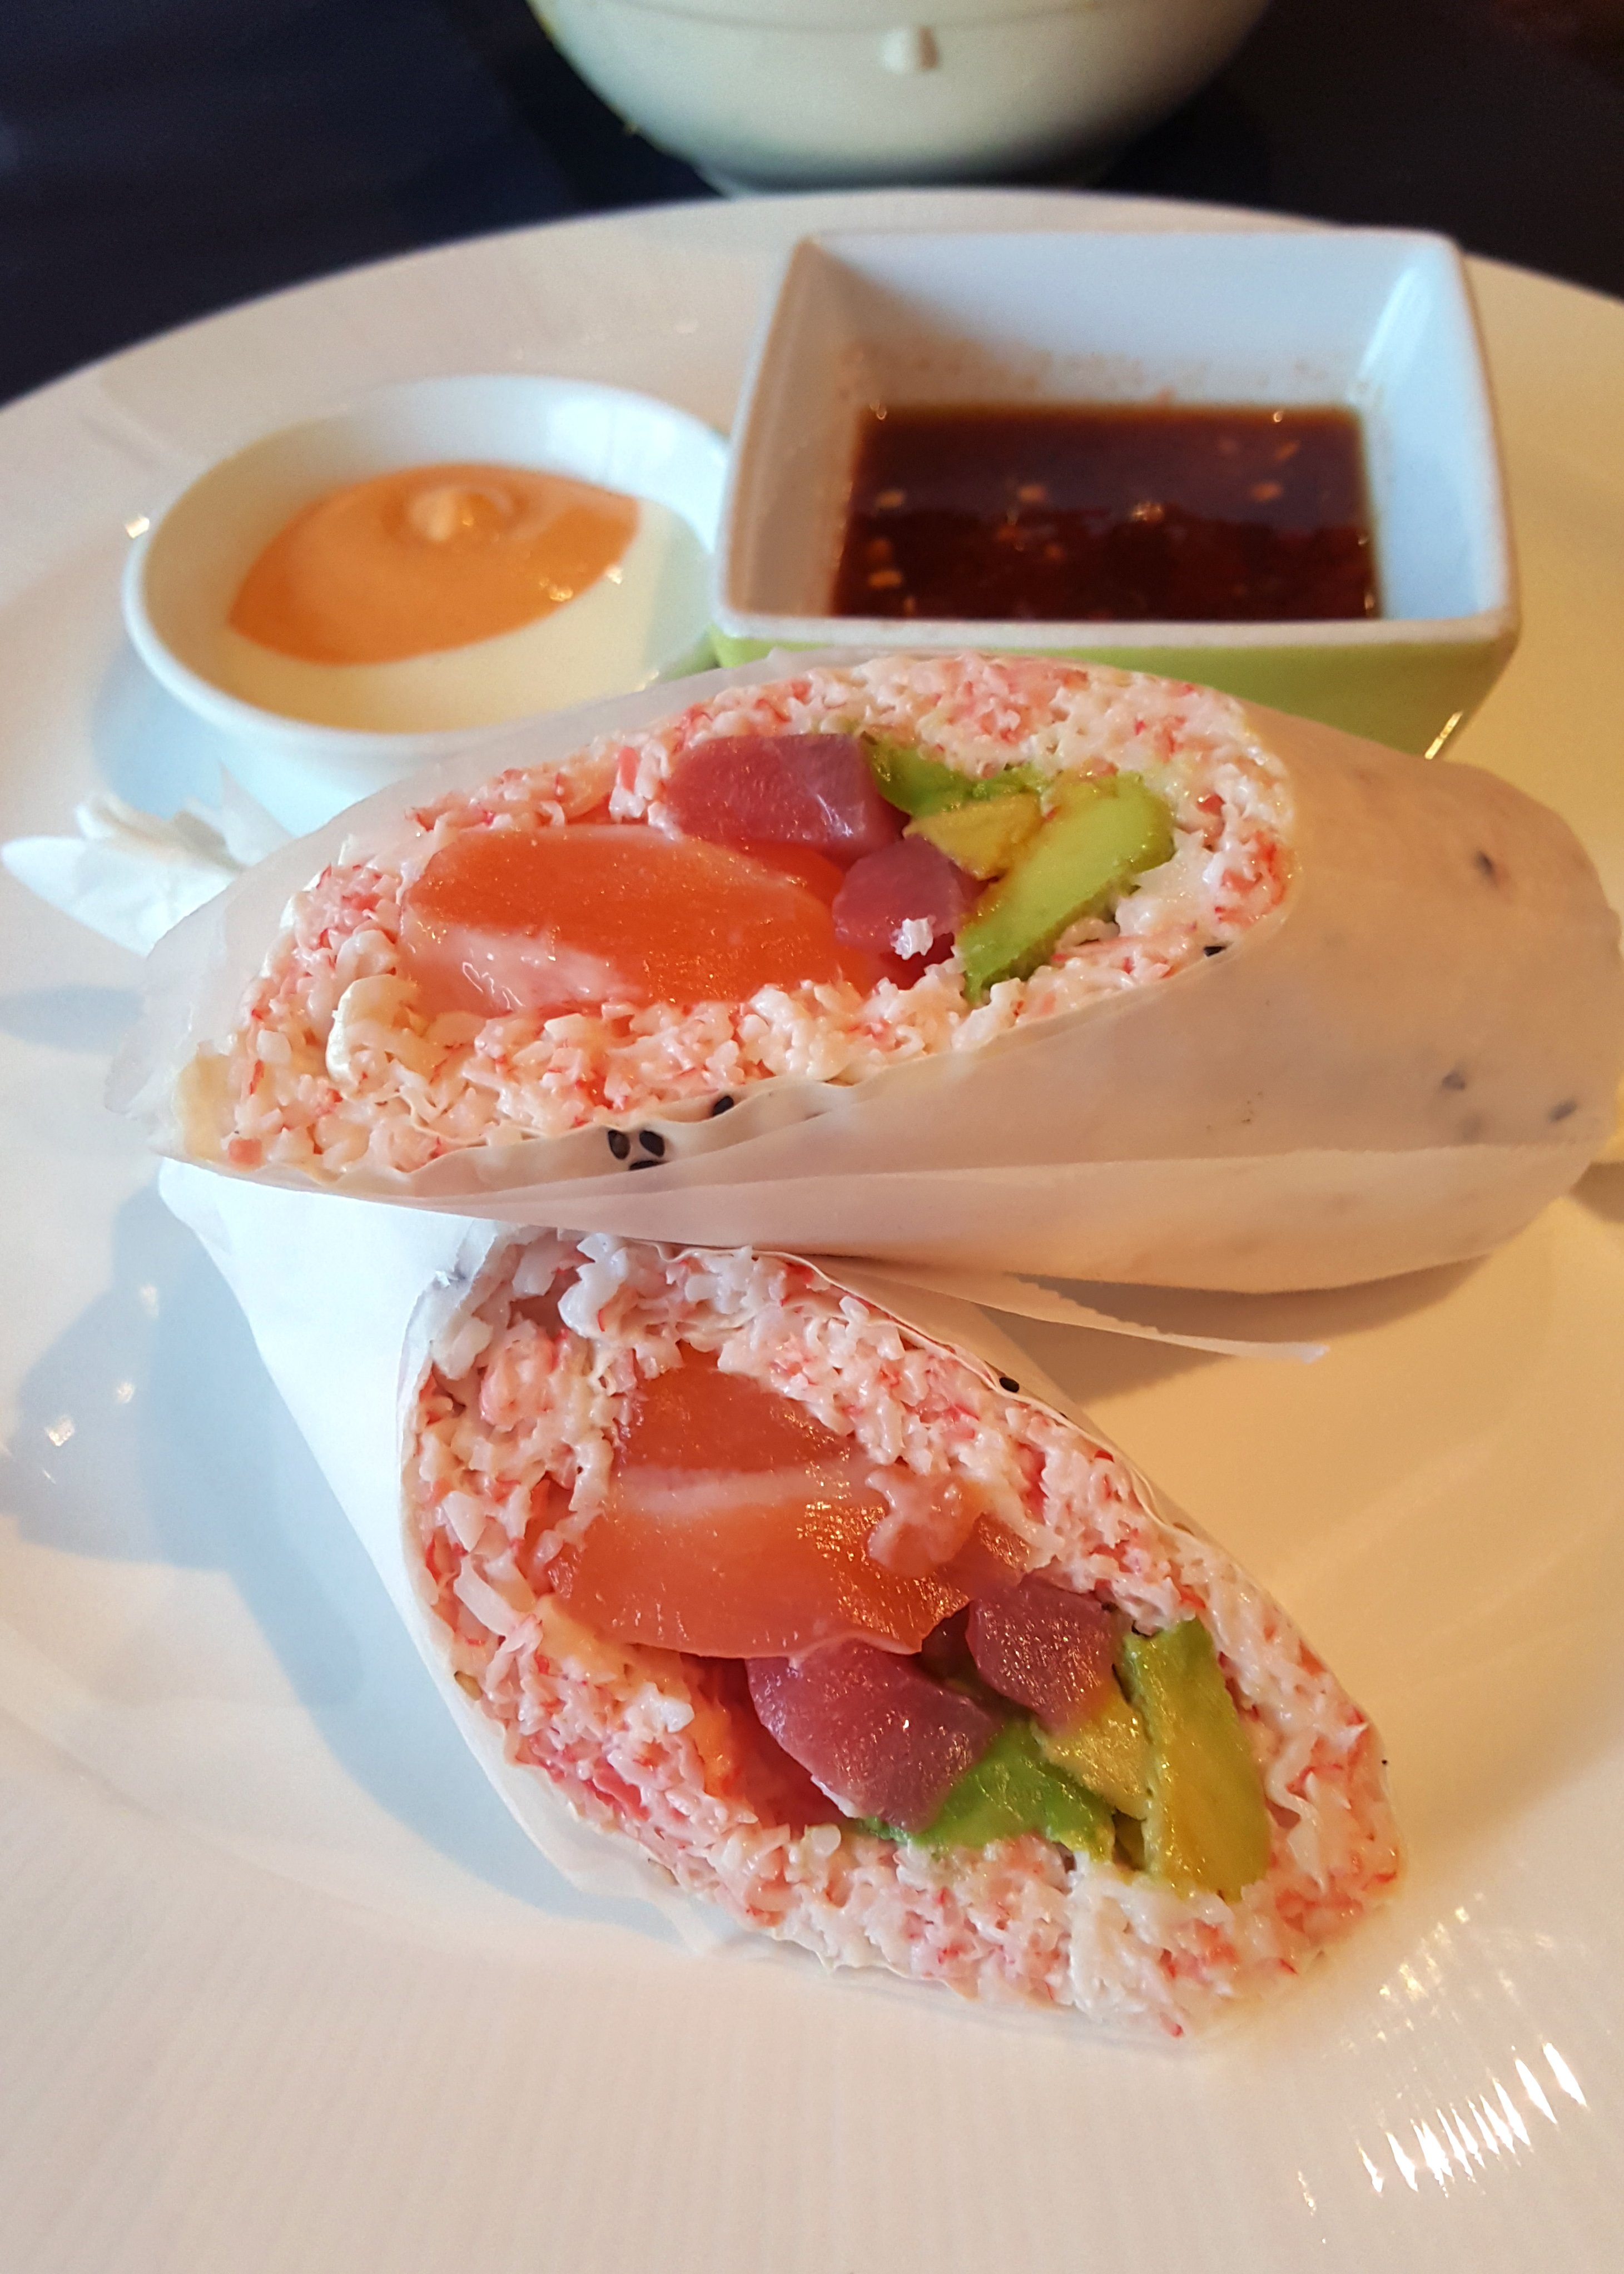 Sushi burrito from Hikari Sushi. Photo by Julia Trupp.